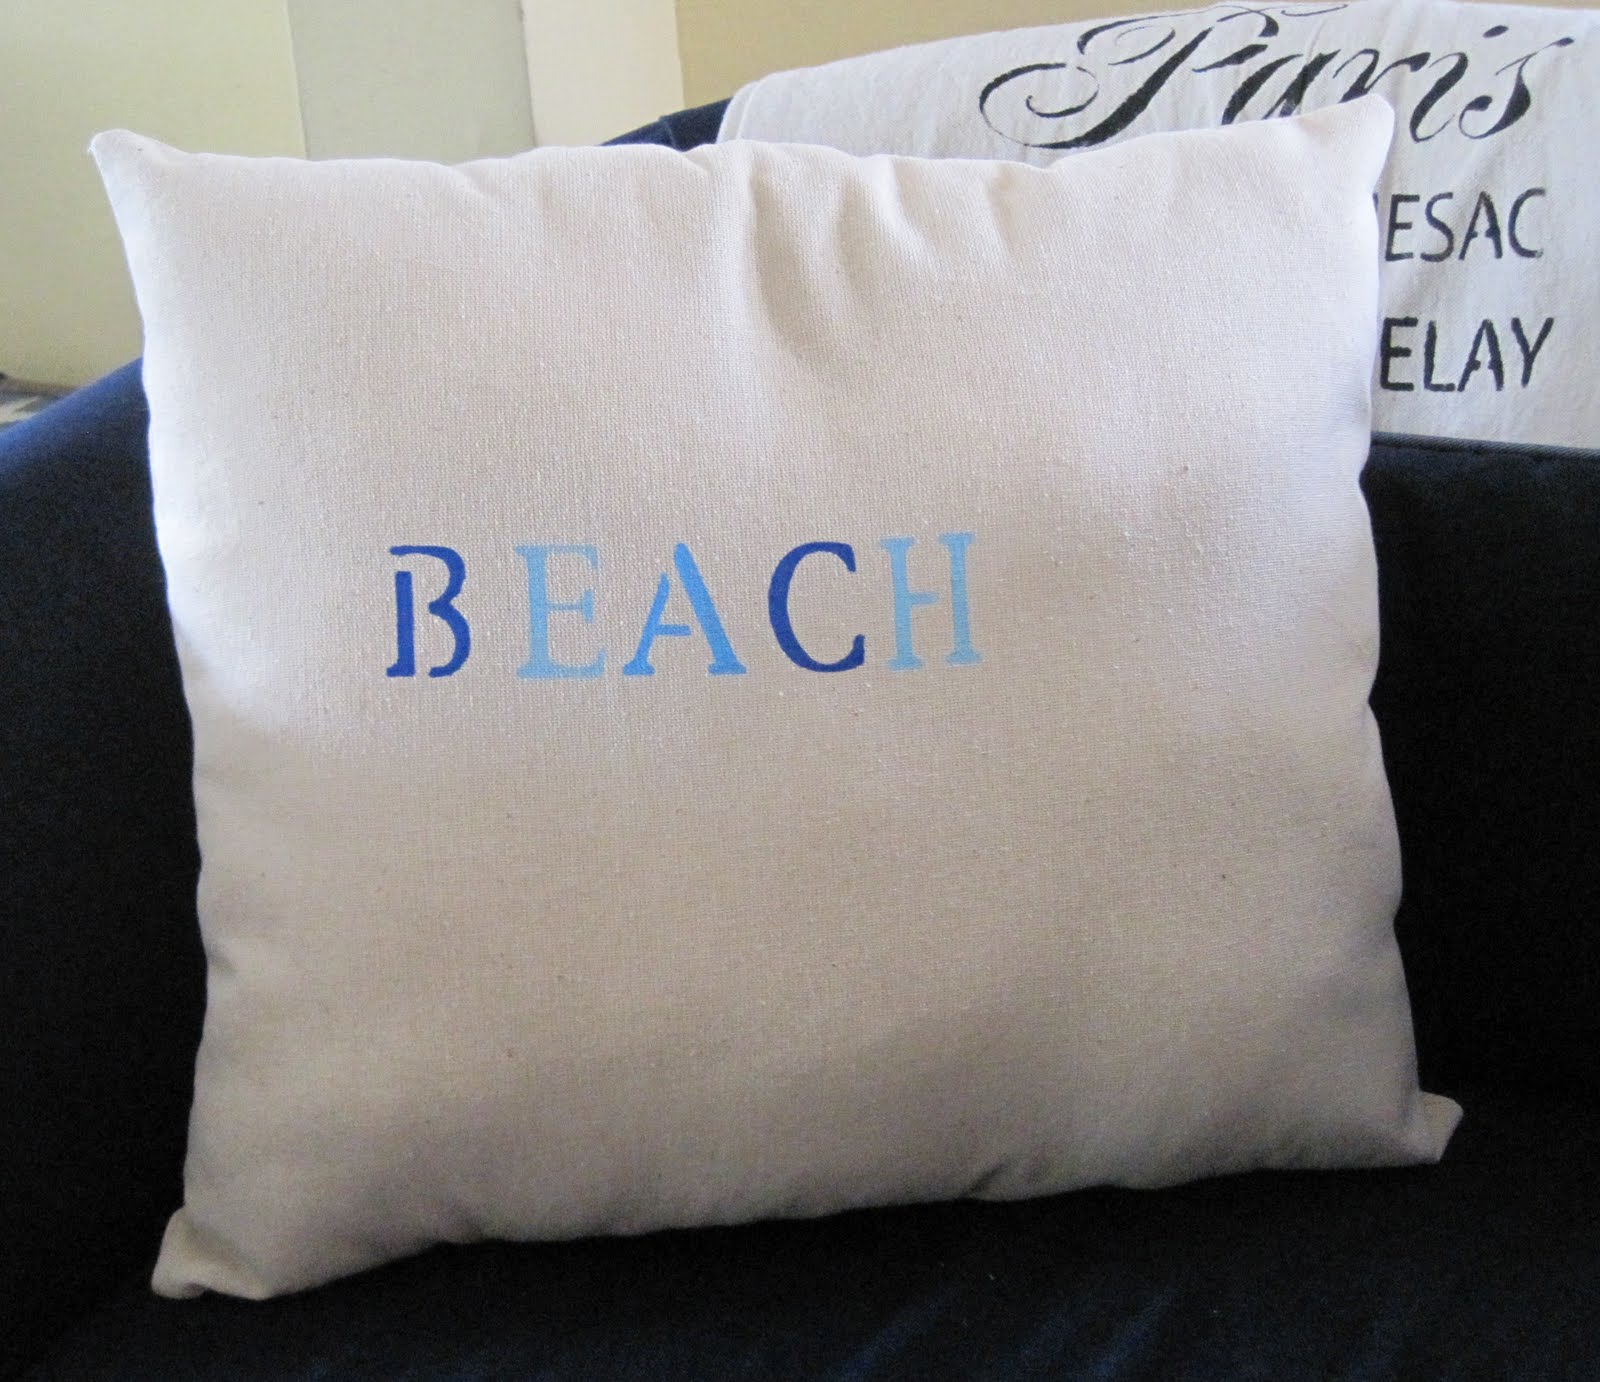 mahlibeachpillows com pillow collections pillows beach grey mahli mentawai bikini